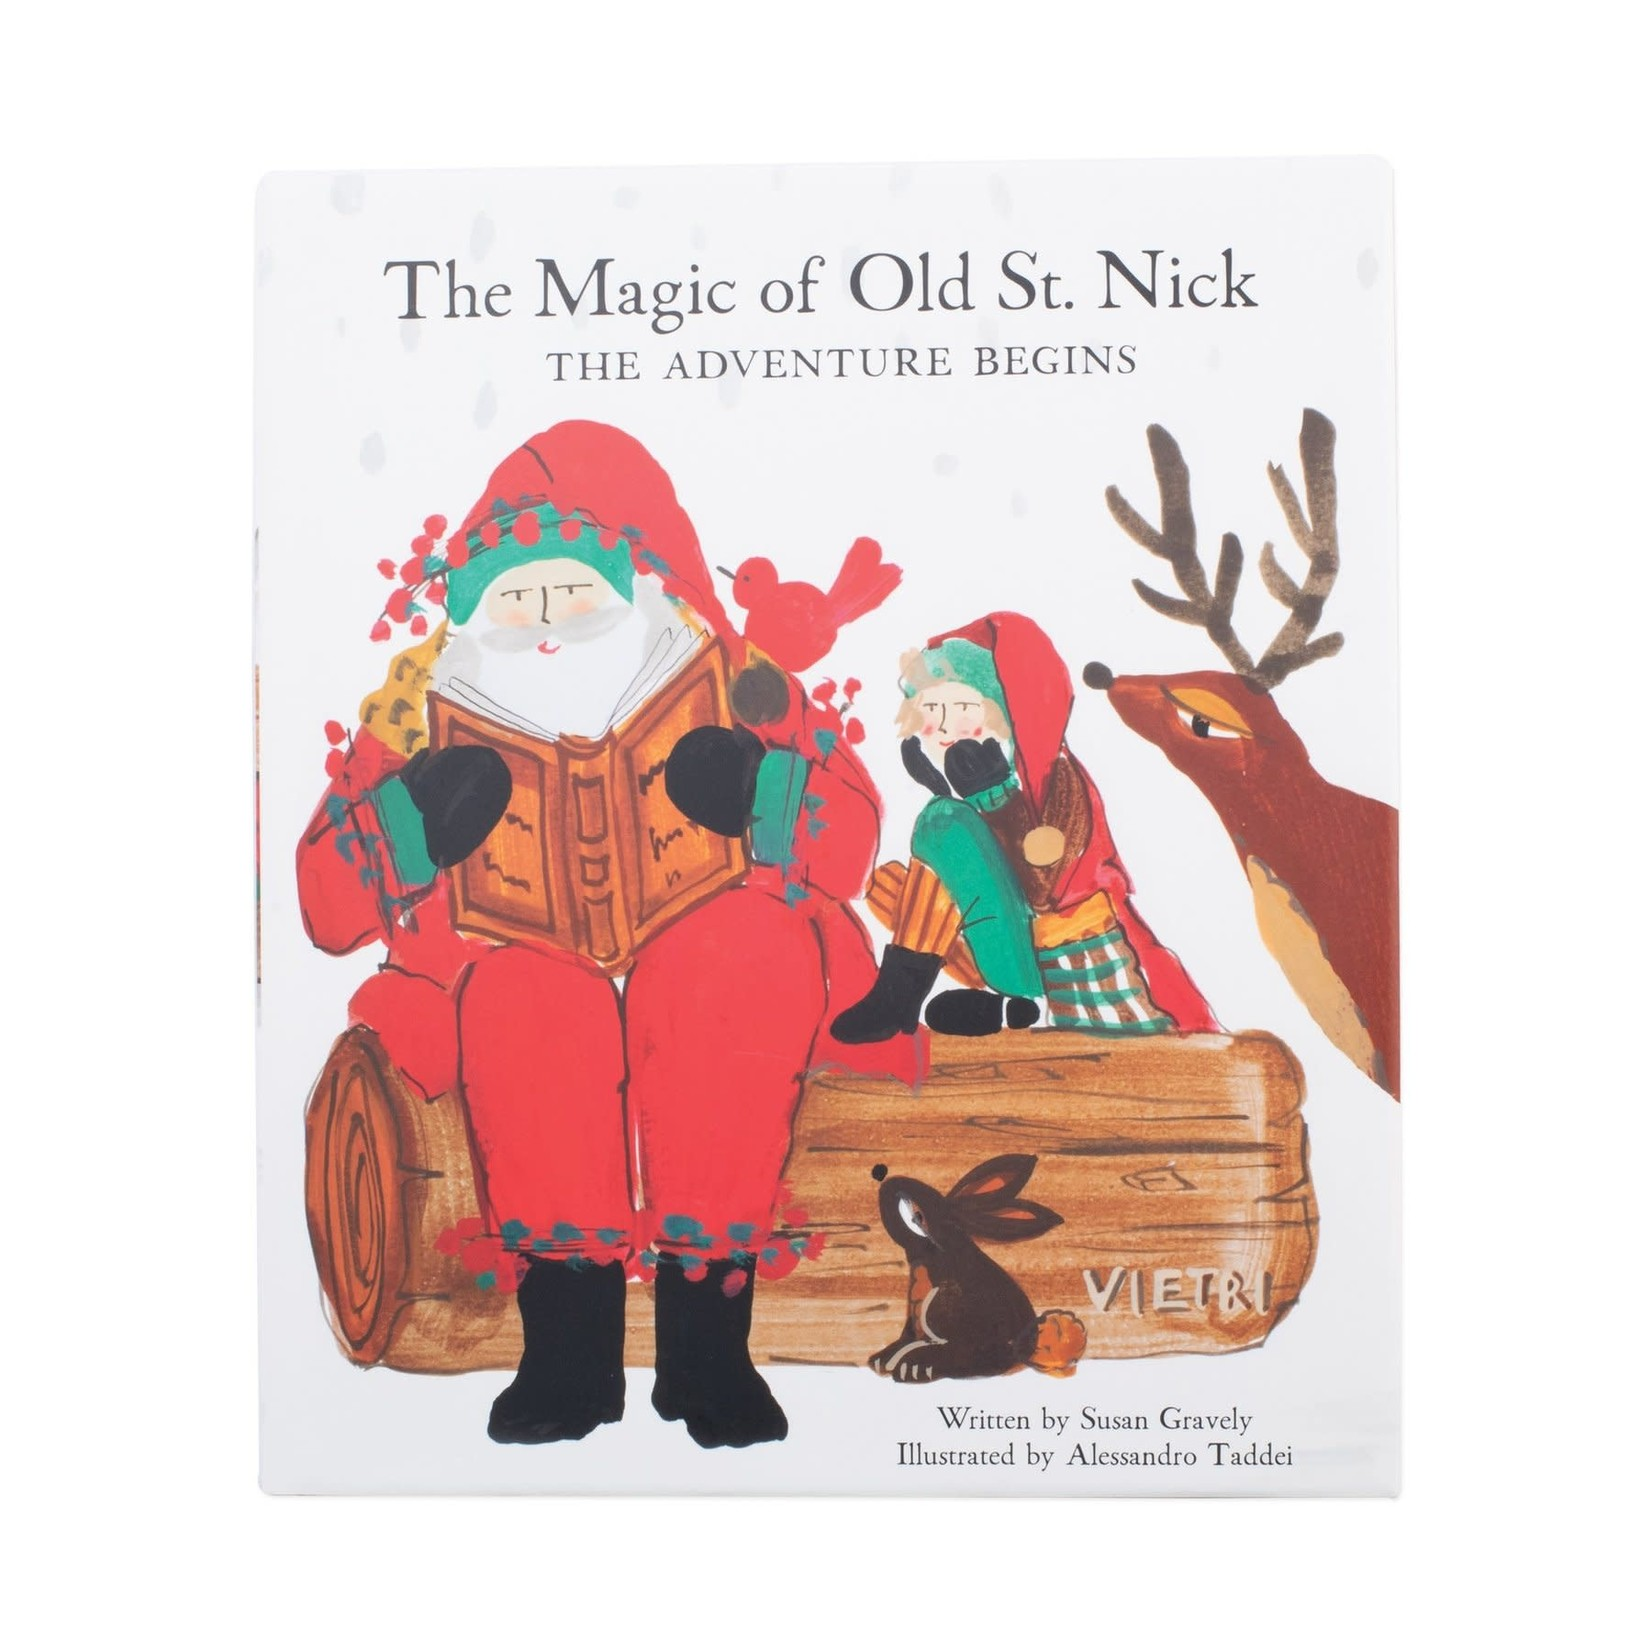 The Magic of Old St. Nick The Adventure Begins